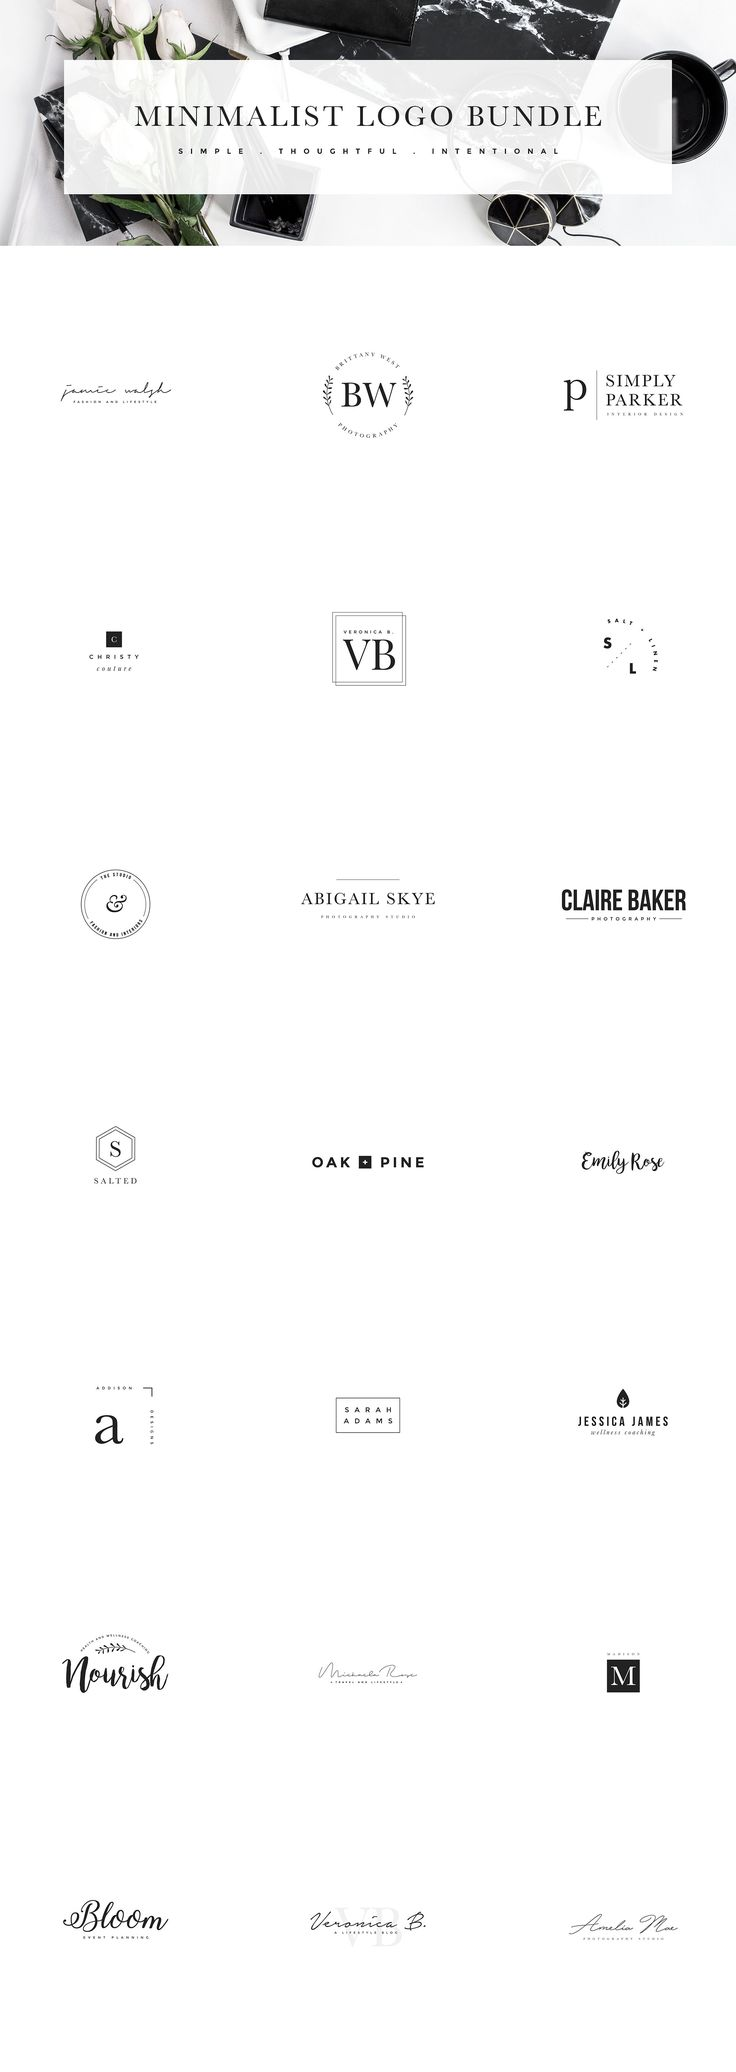 87 best tote bag images on pinterest minimalist logo collection malvernweather Image collections